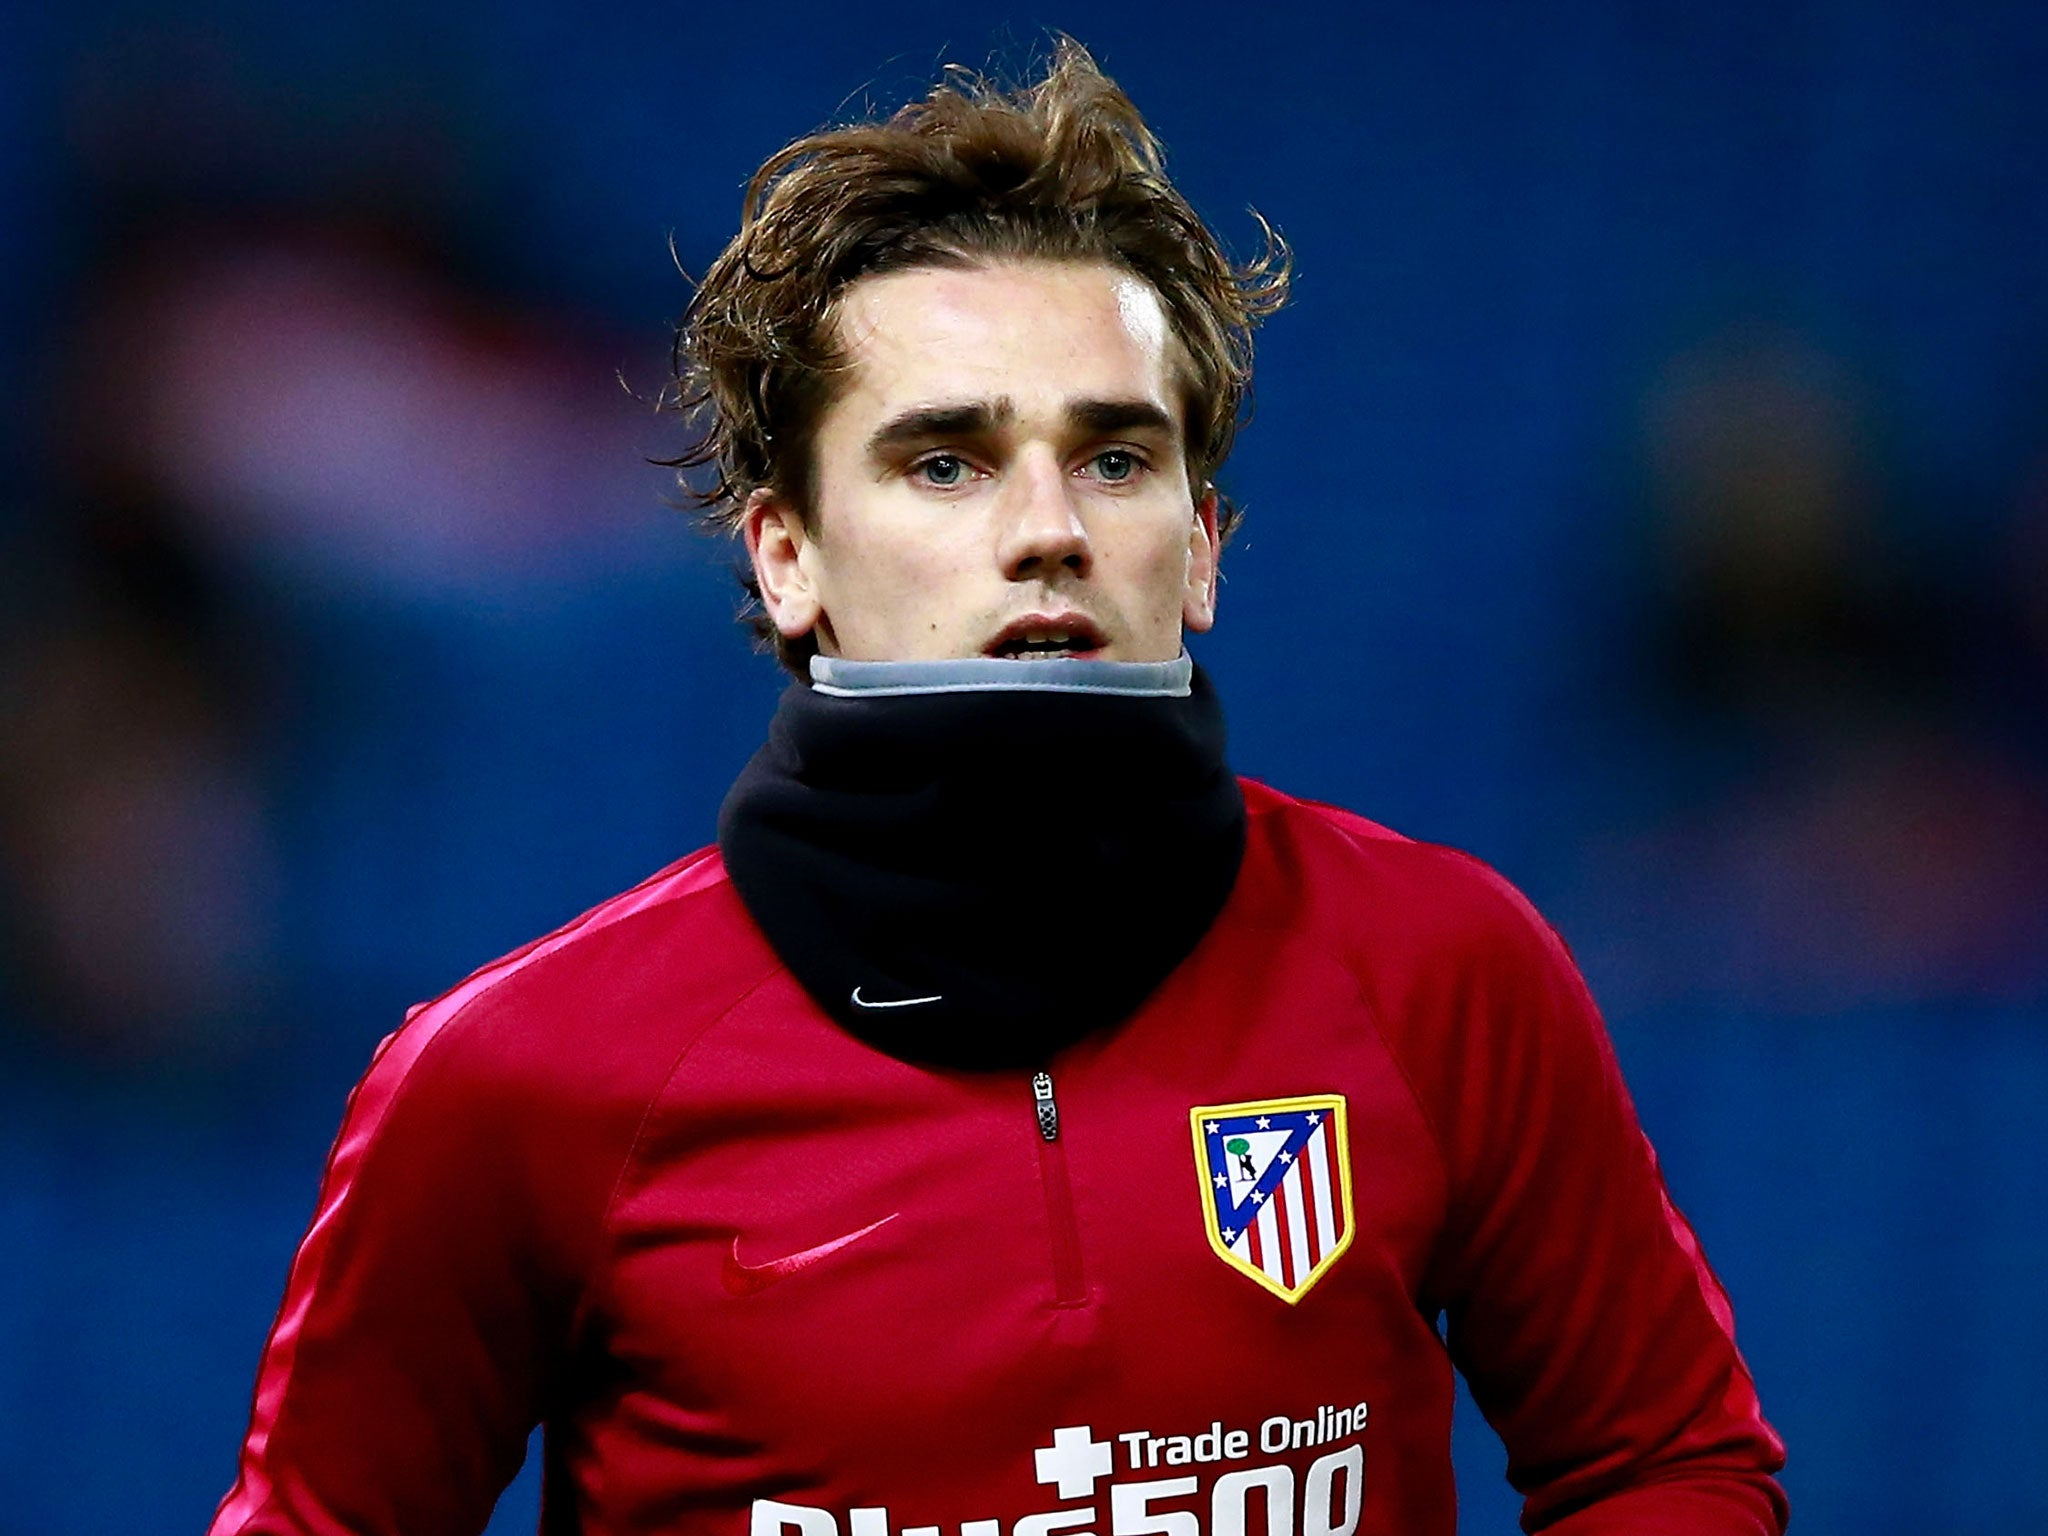 Antoine Griezmann advised to join Manchester United to emulate his idol David Beckham